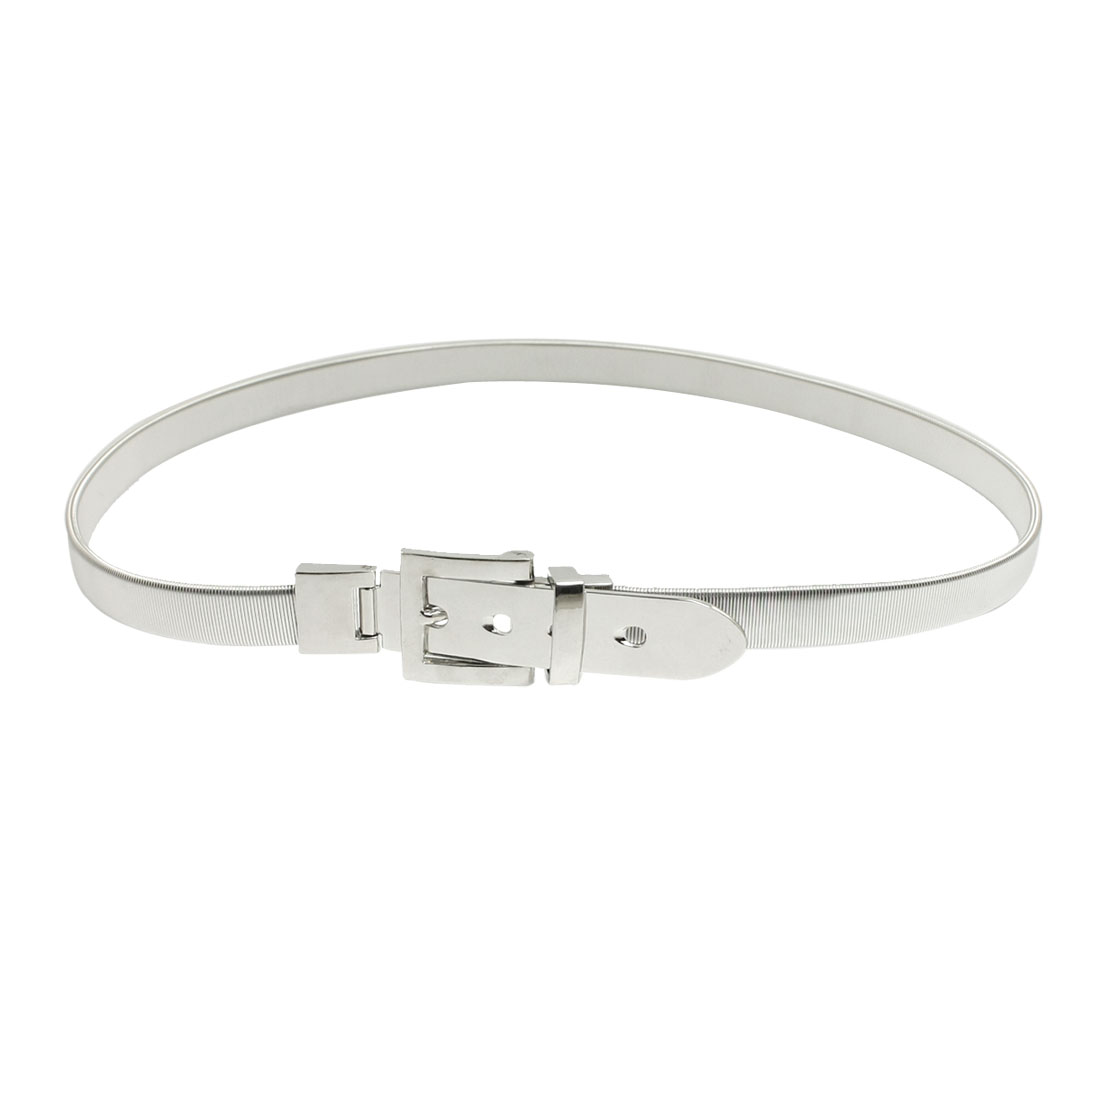 Silver Tone Metal Single Pin Buckle Elastic Waist Belt for Women